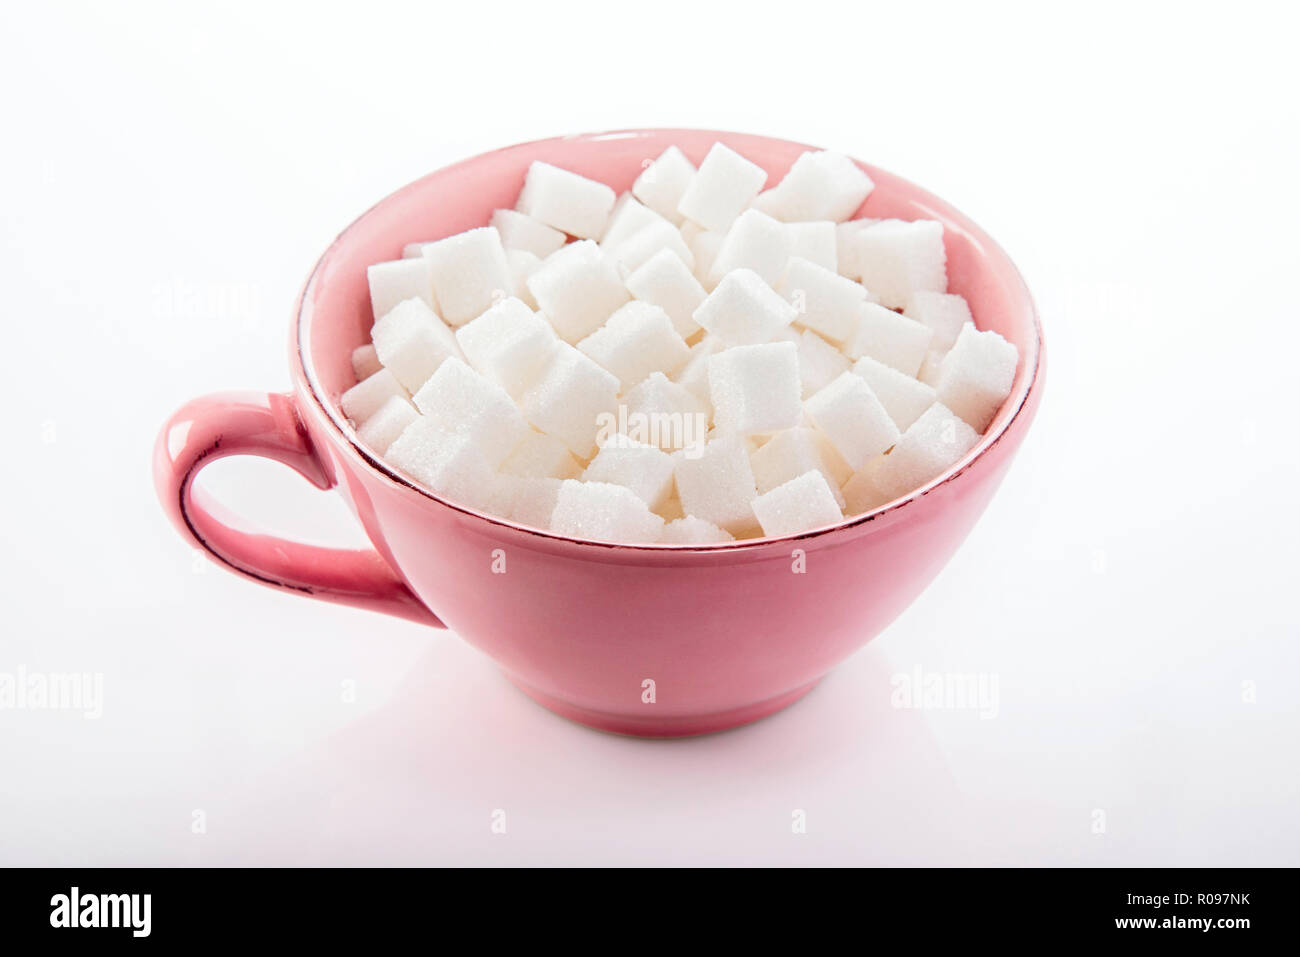 refined sugar in a cup - Stock Image